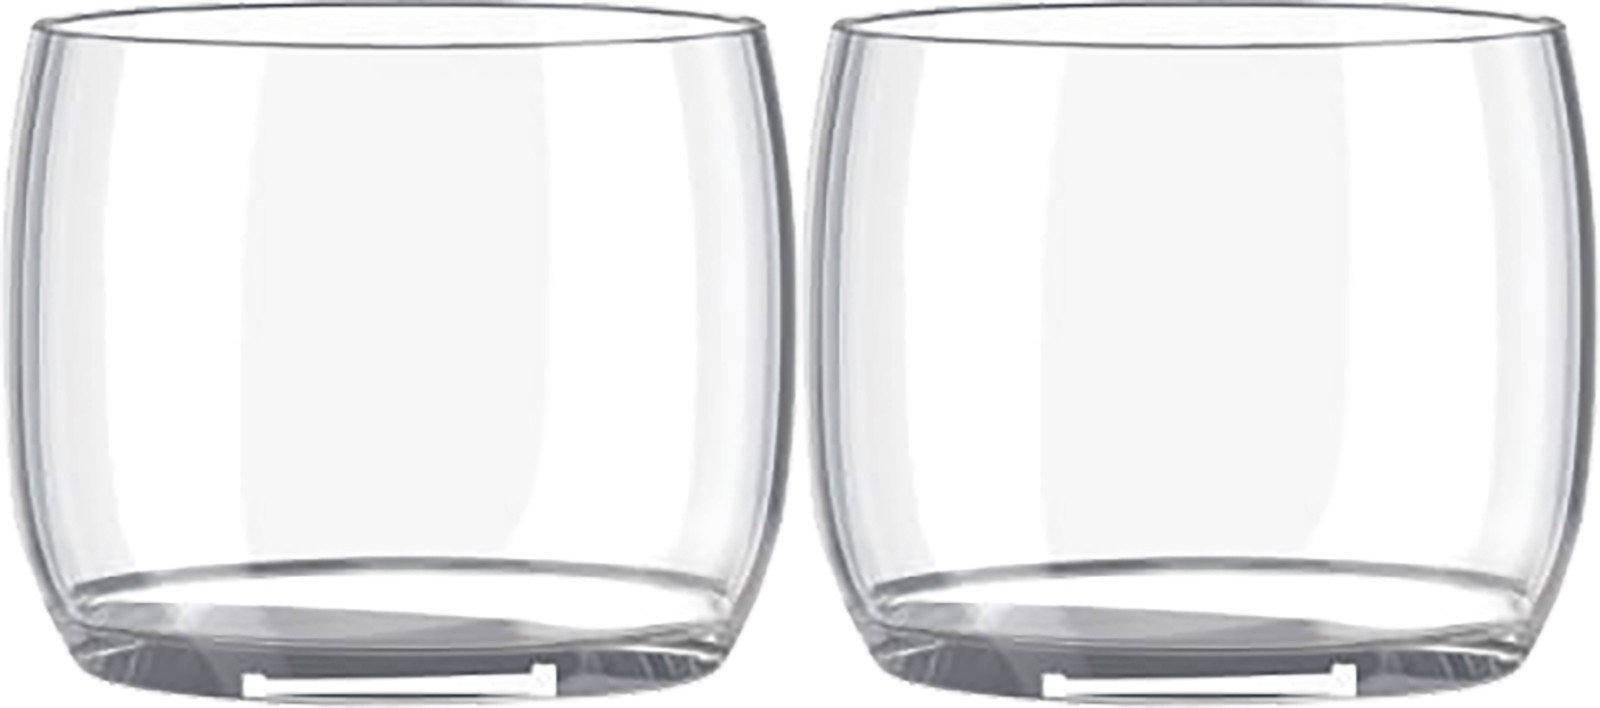 Set of 2 Glasses AB/C Cleatr by C. Charlotte Brüel for Lyngyby Porcelain